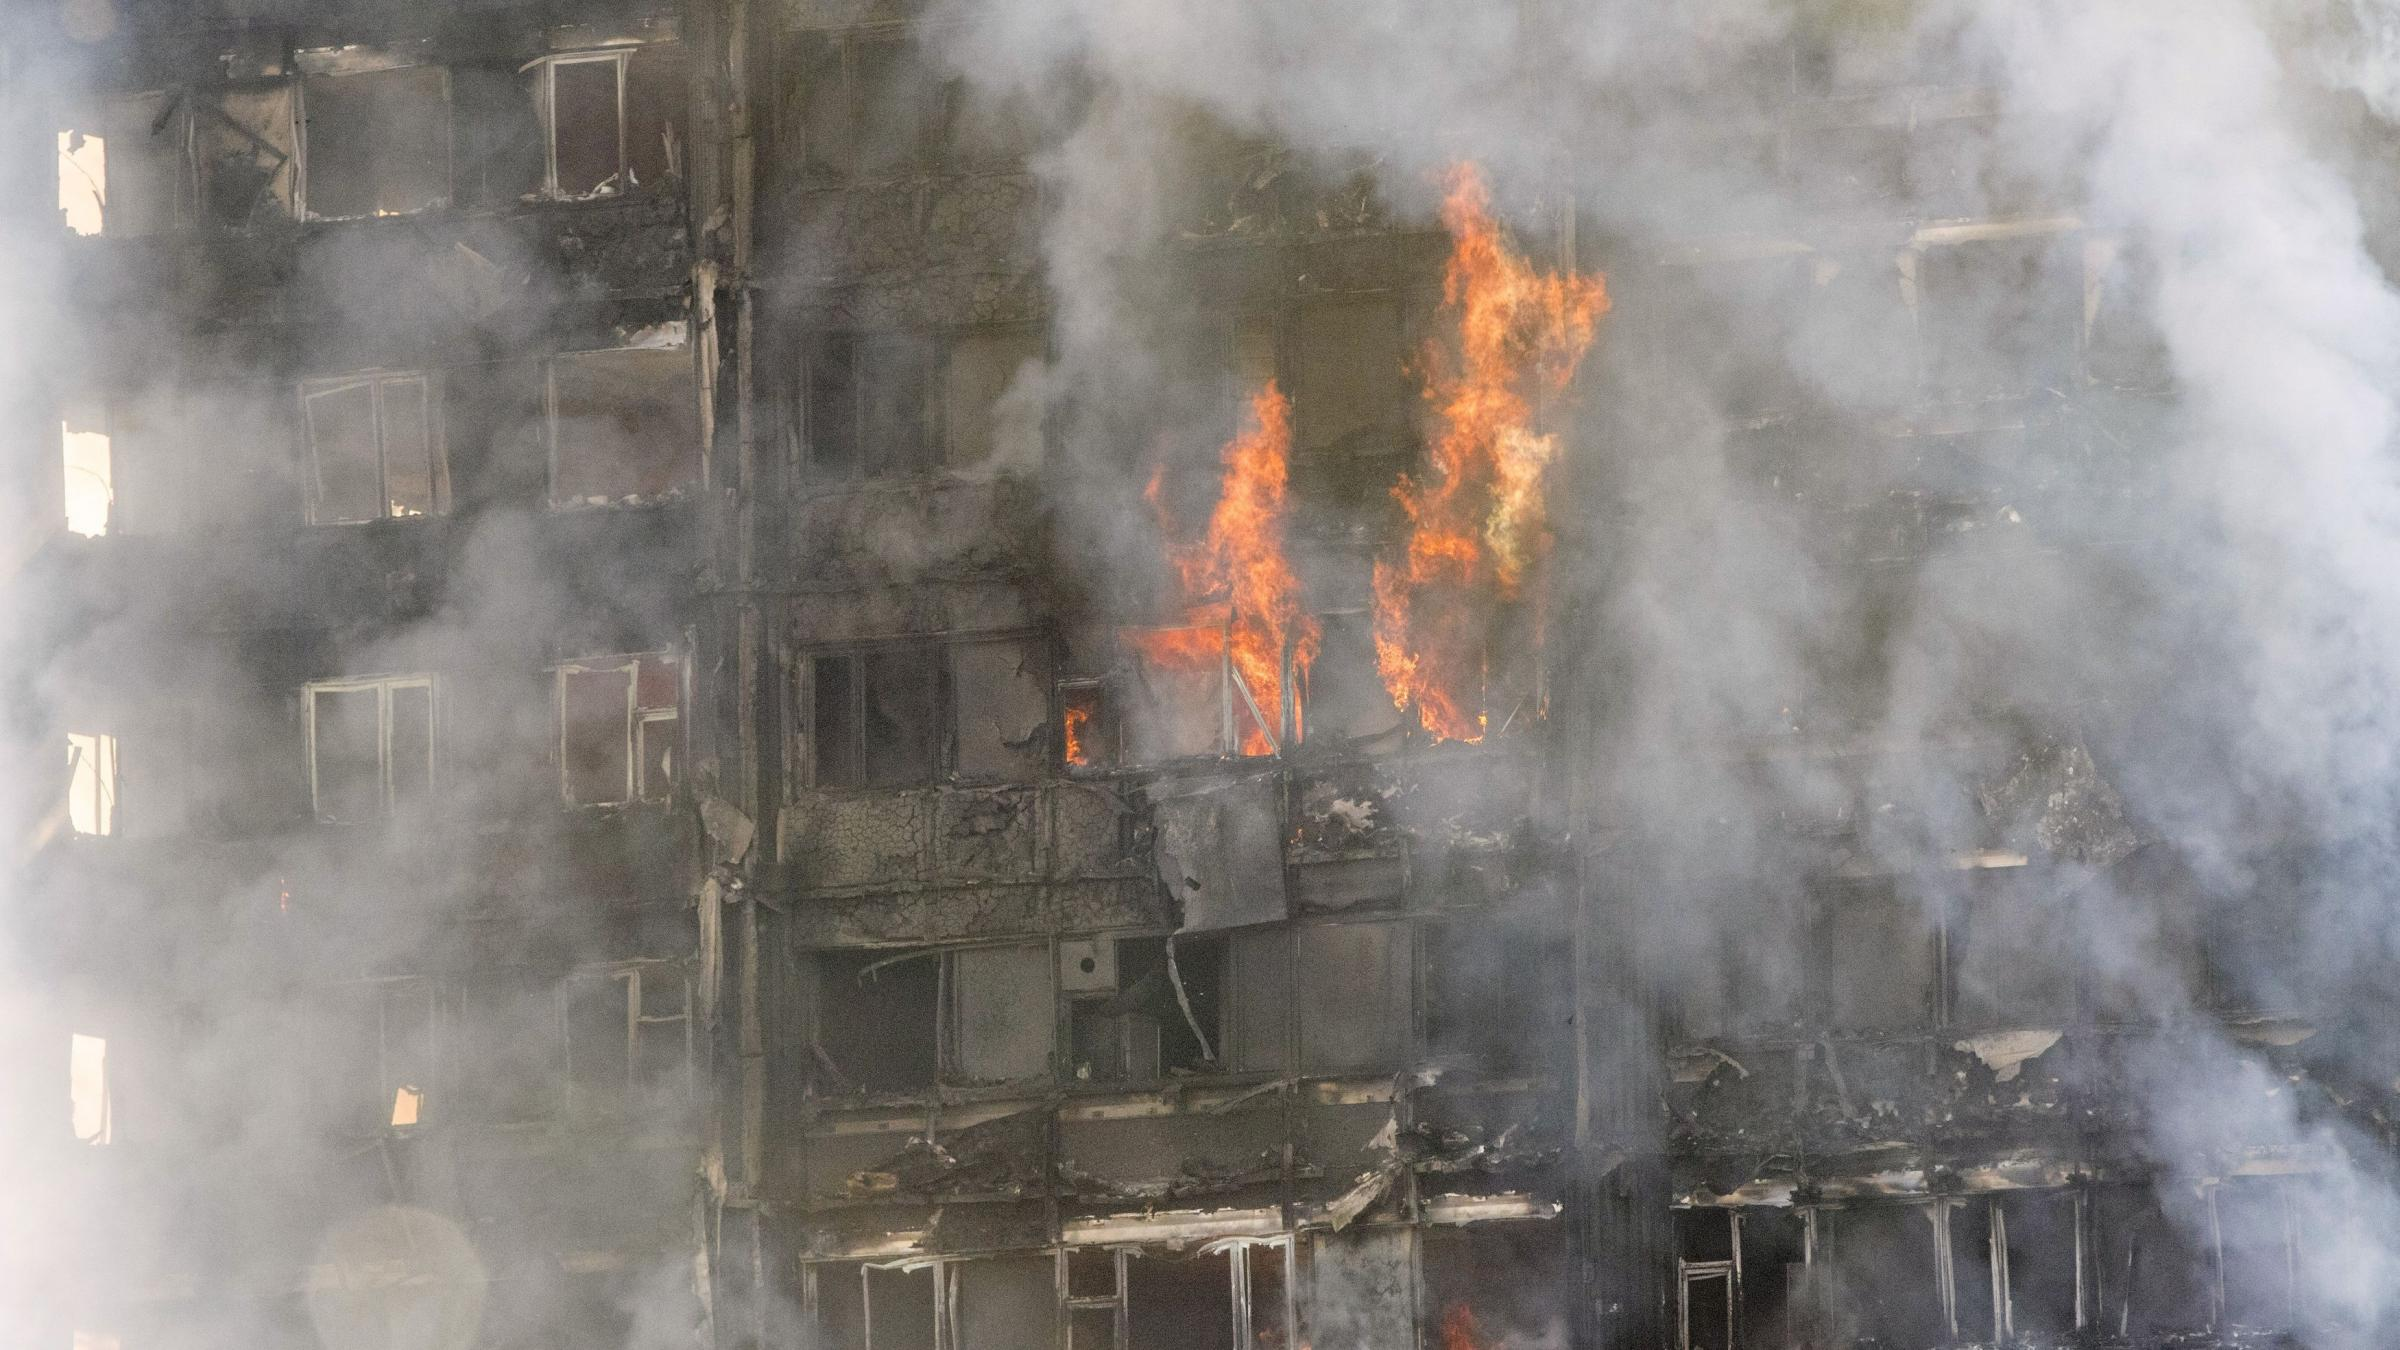 London fire: Baby caught after being 'dropped to safety from tower'